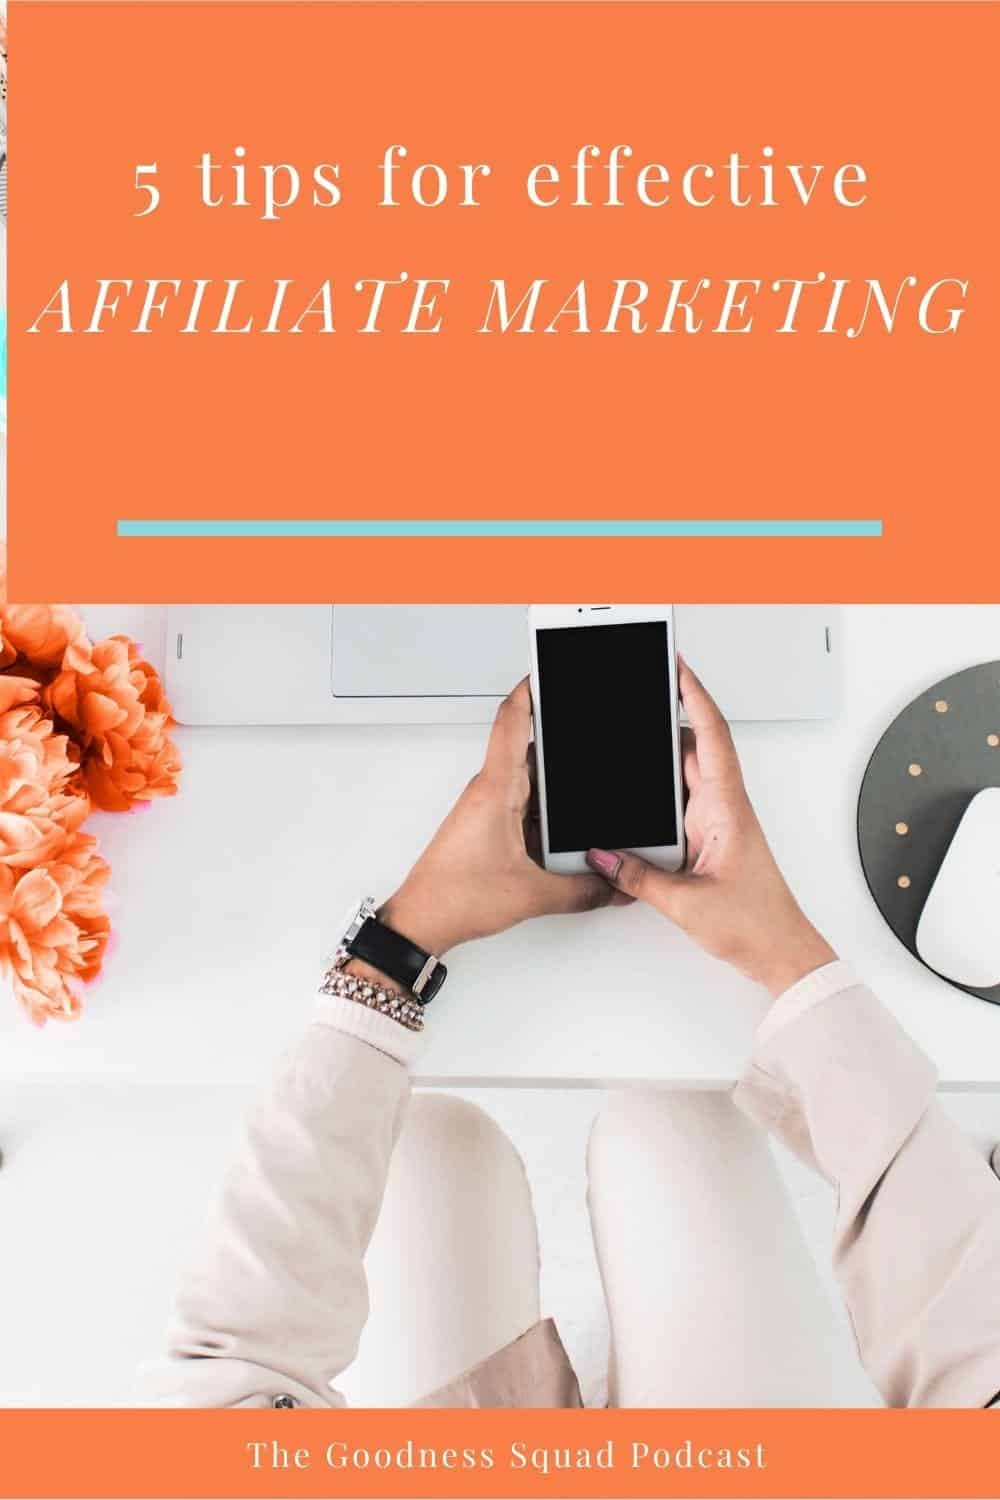 040_5 Tips for effective affiliate marketing